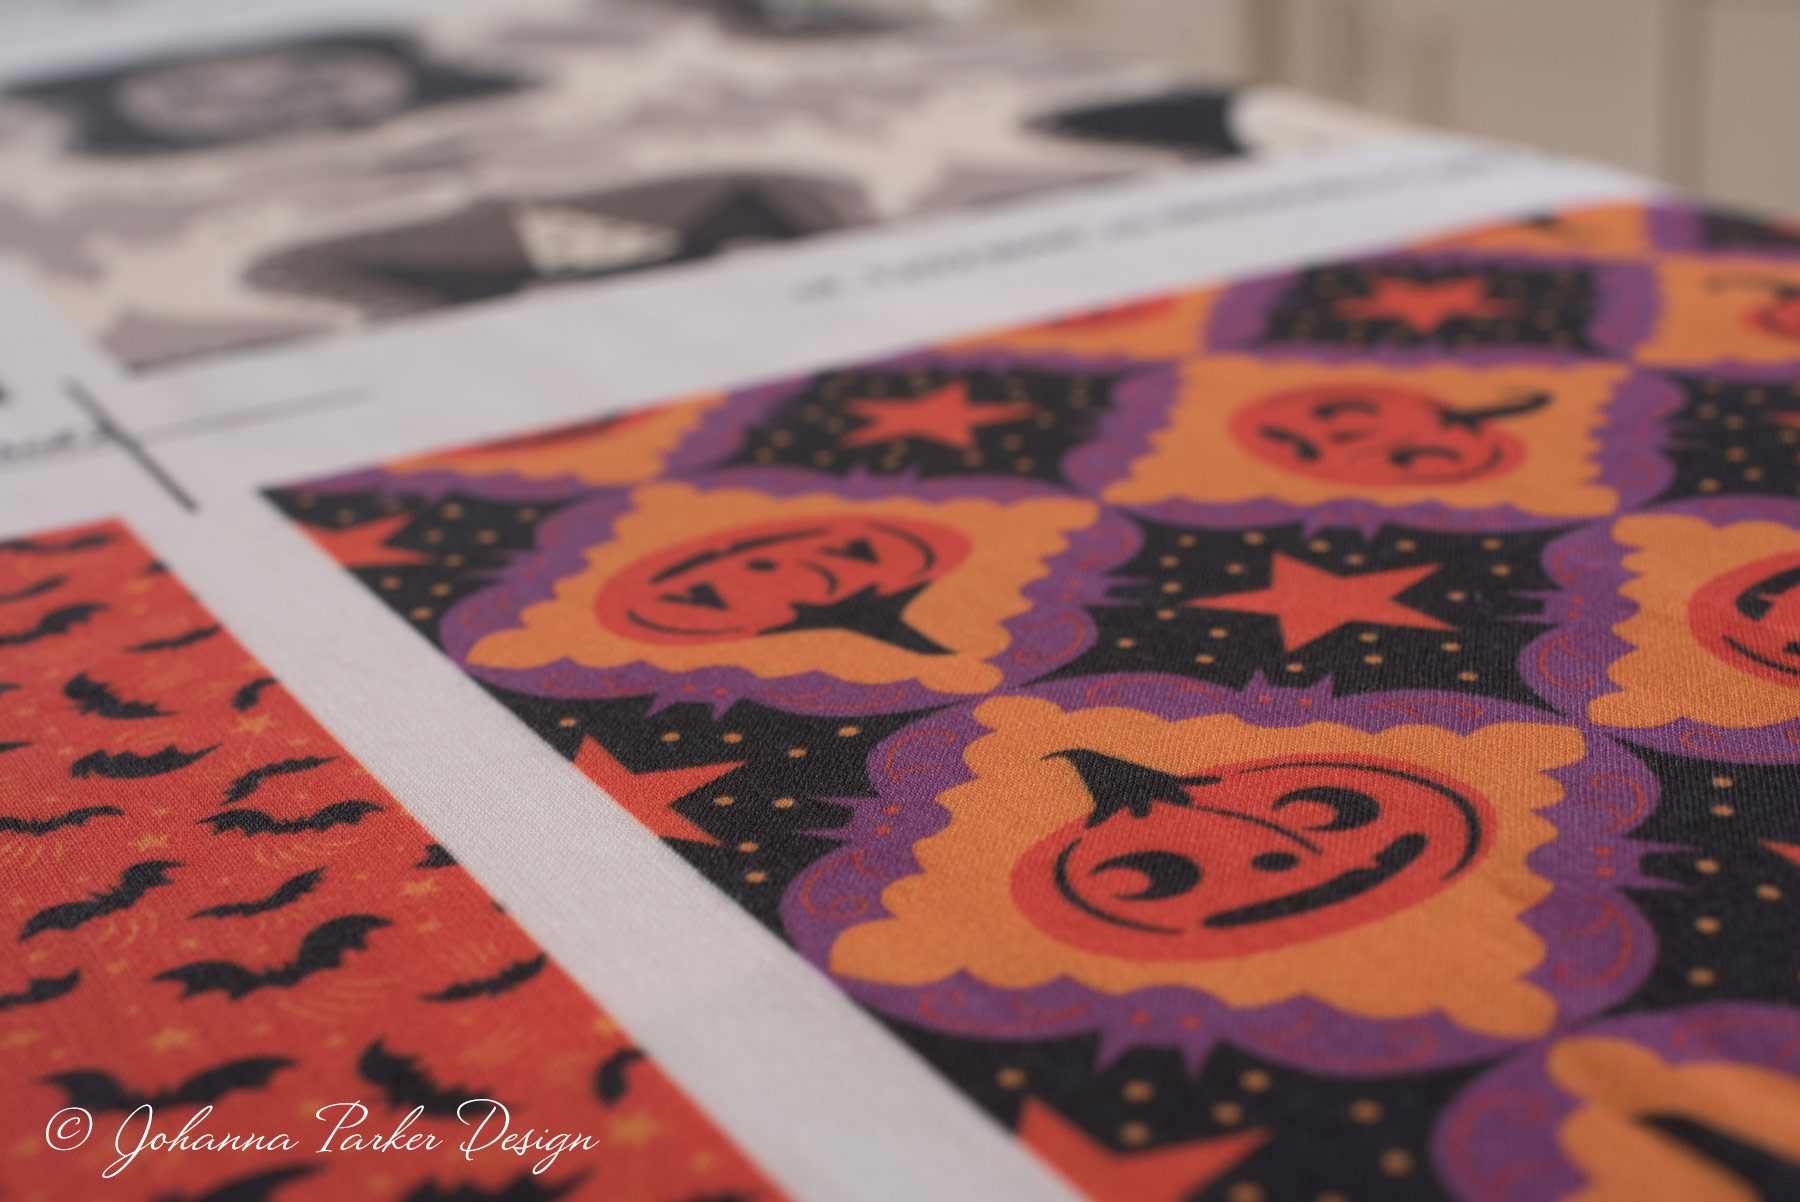 A fun & festive pair:  Wild Bats on Orange small  ~ and ~  Purple Bat Frame Jack-o'-lanterns